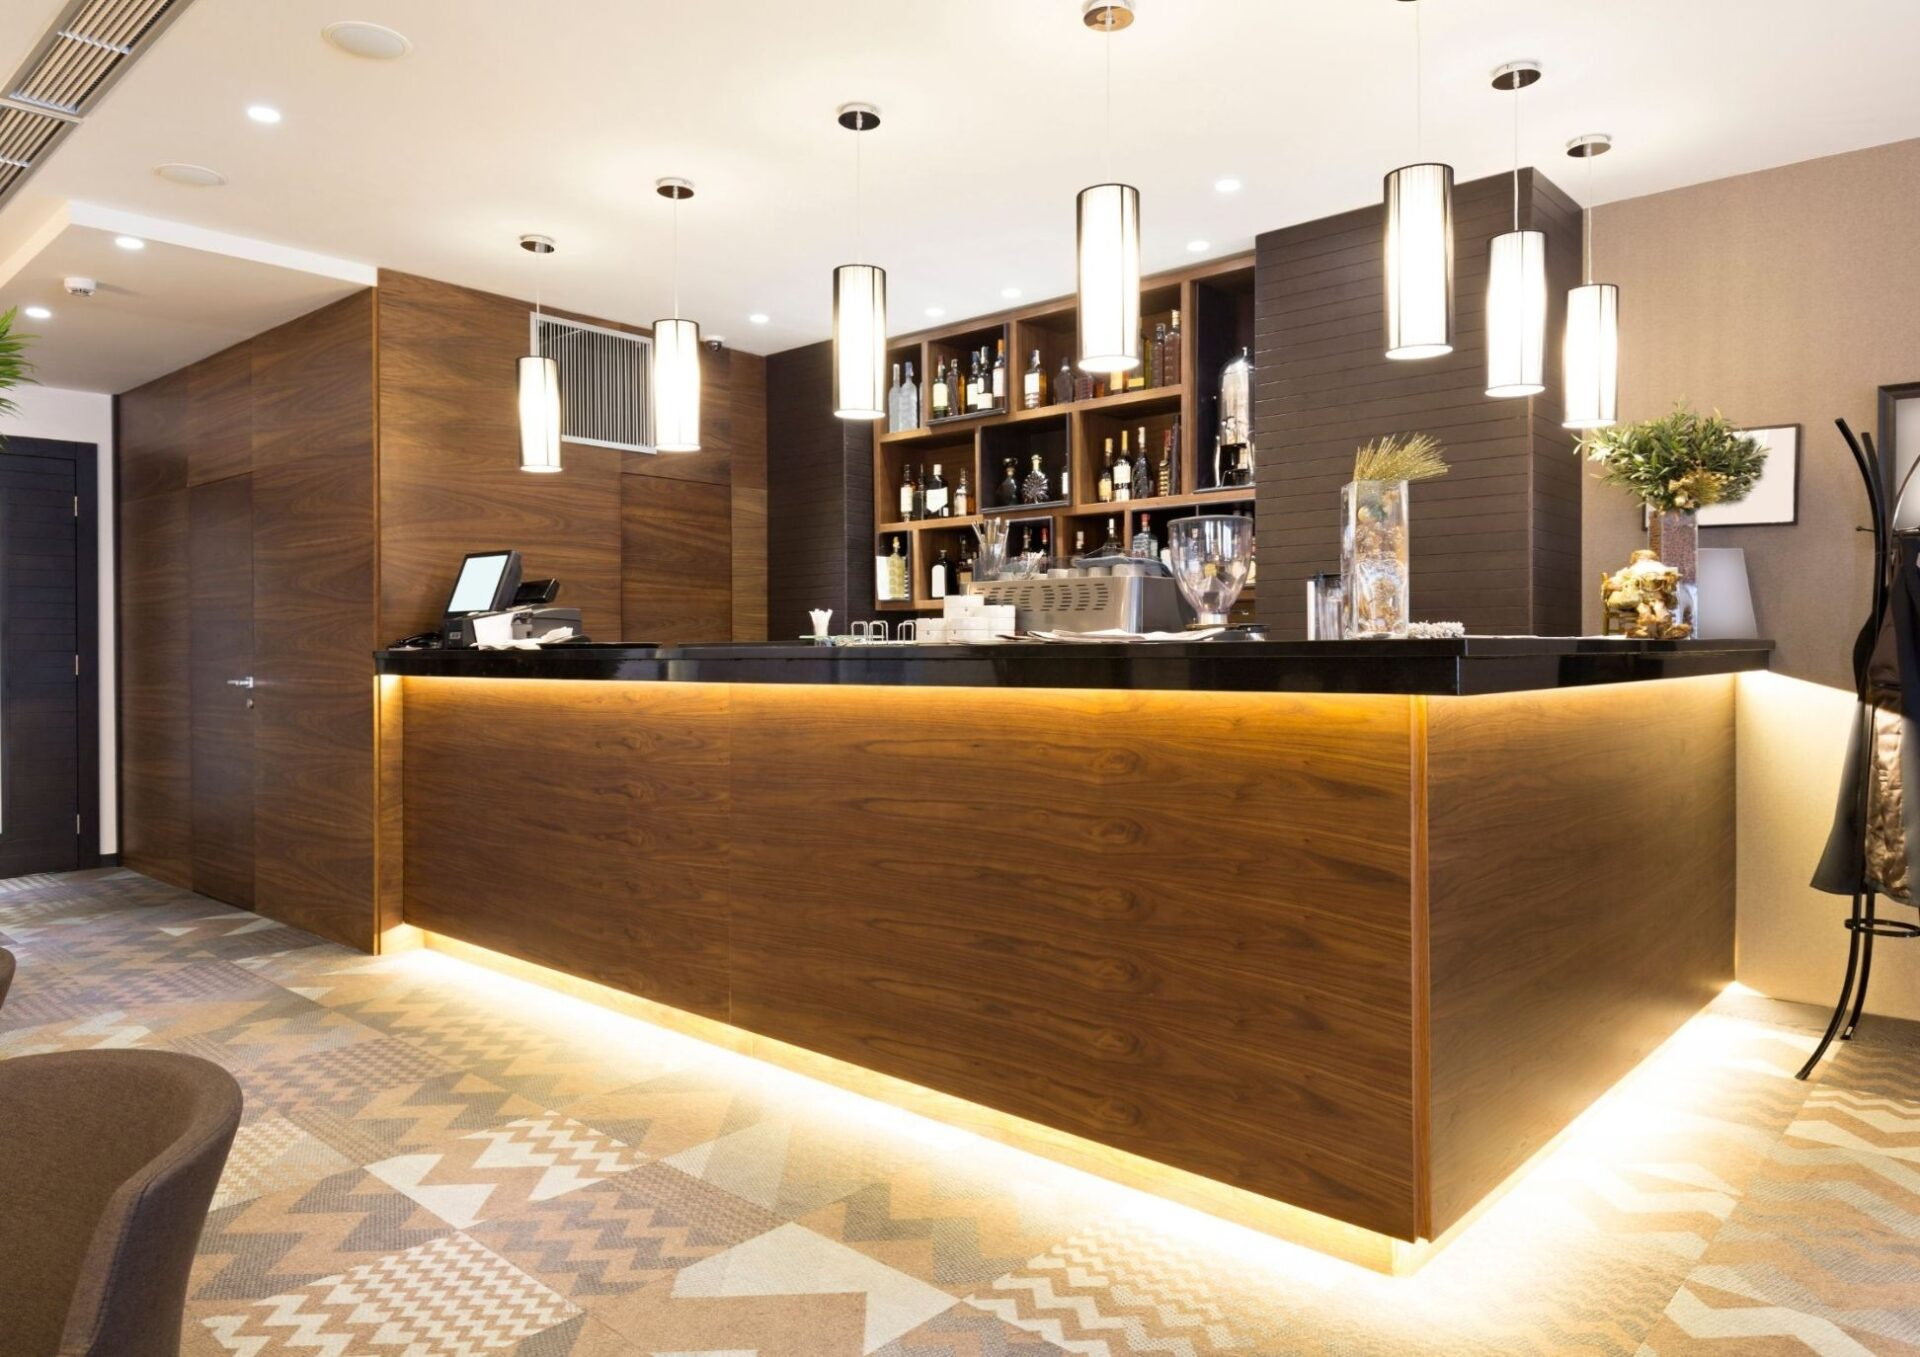 Bar Fitout Project In Sydney